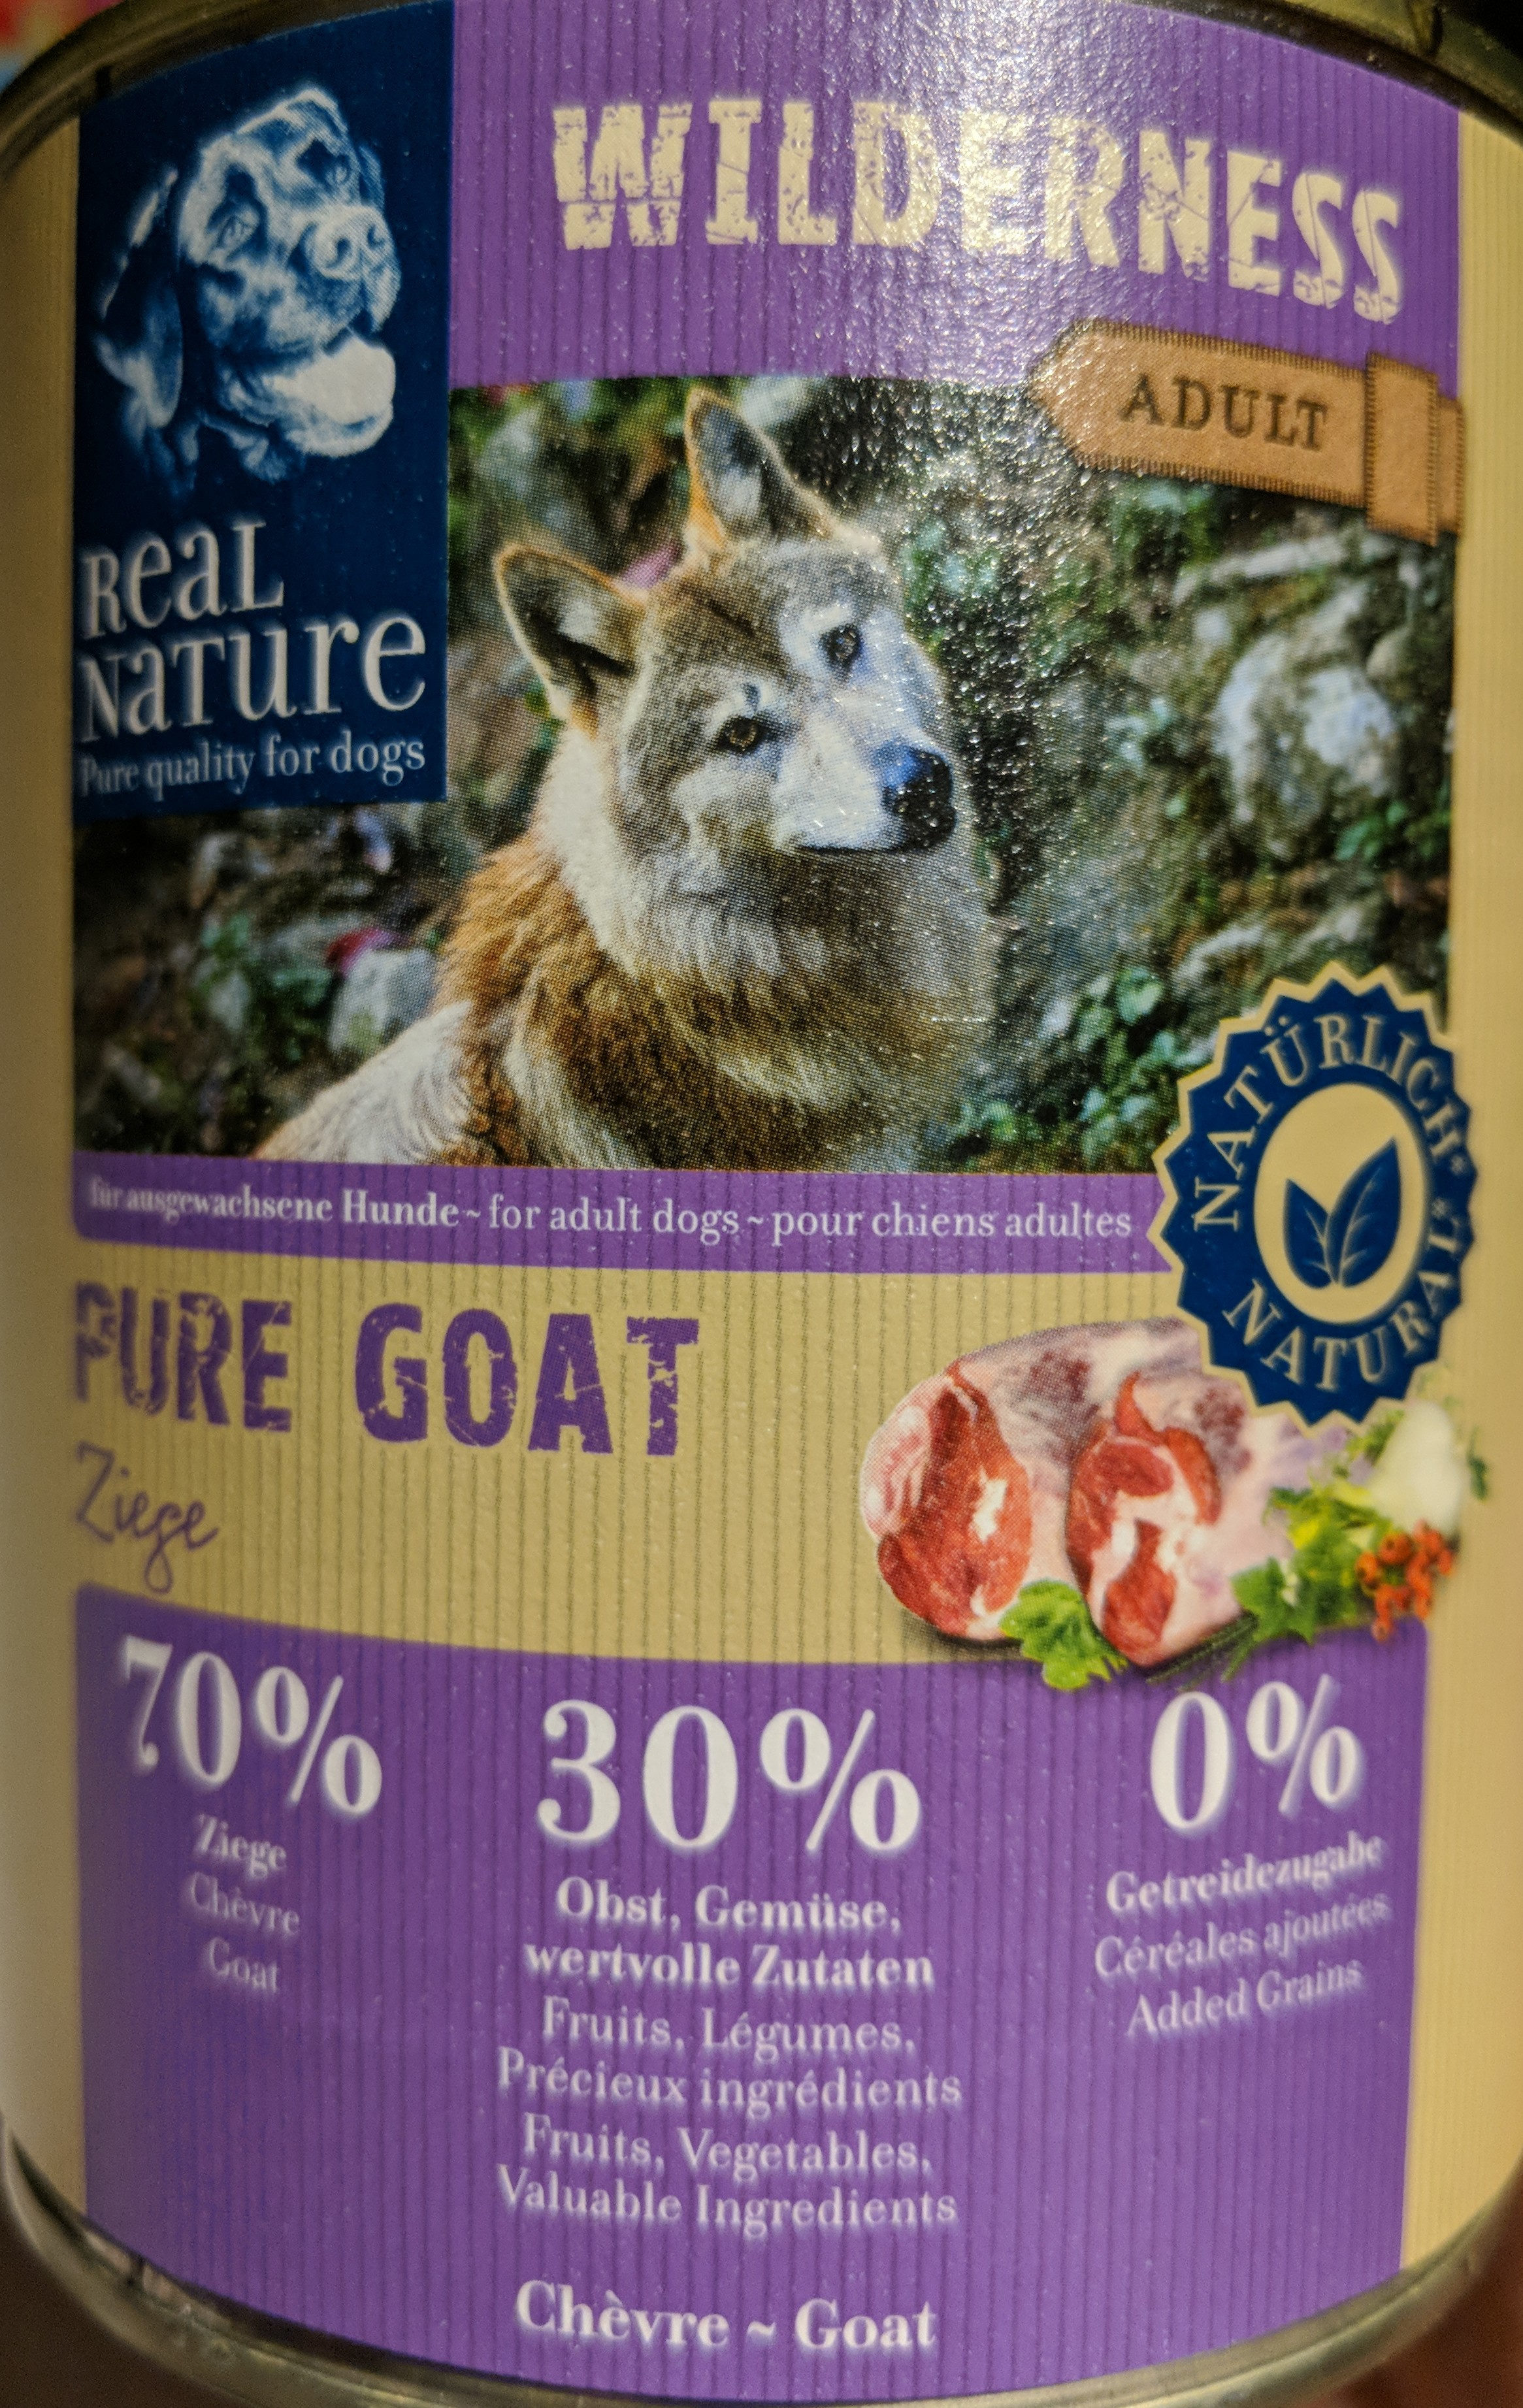 Pure Goat - Product